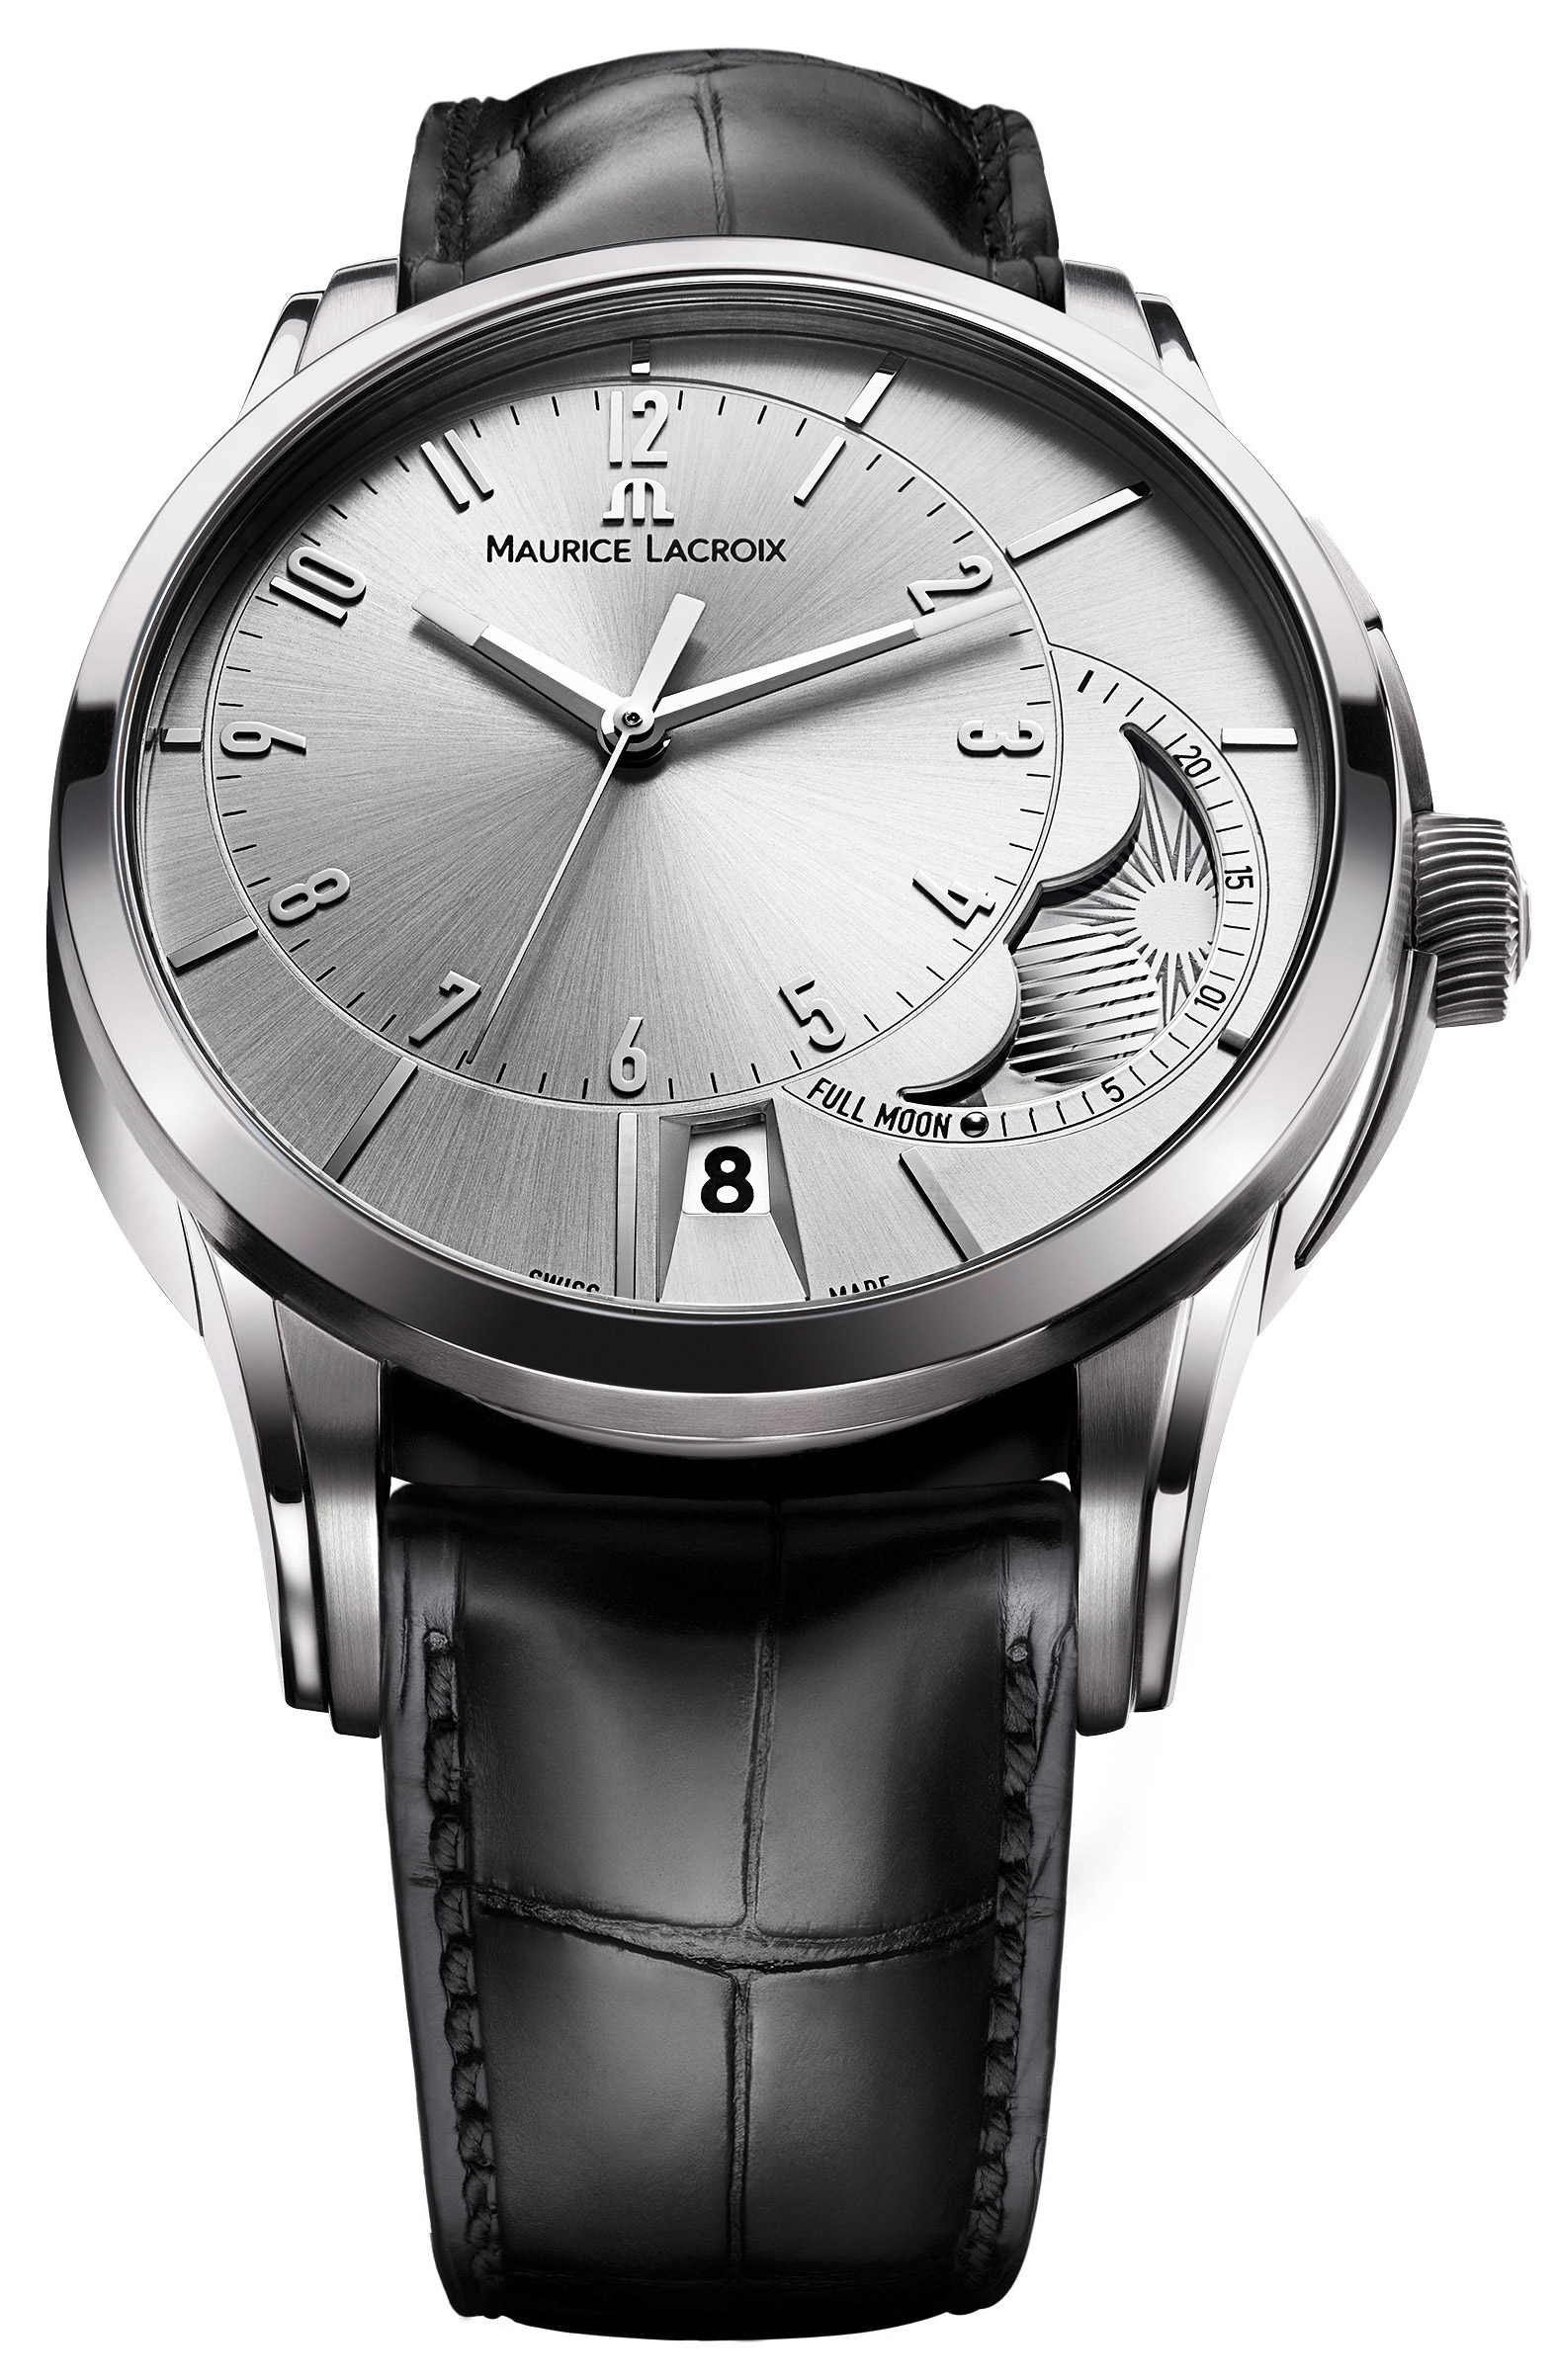 Maurice lacroix pontos decentrique men 39 s watch model pt6318 ss001 130 for Maurice lacroix watches